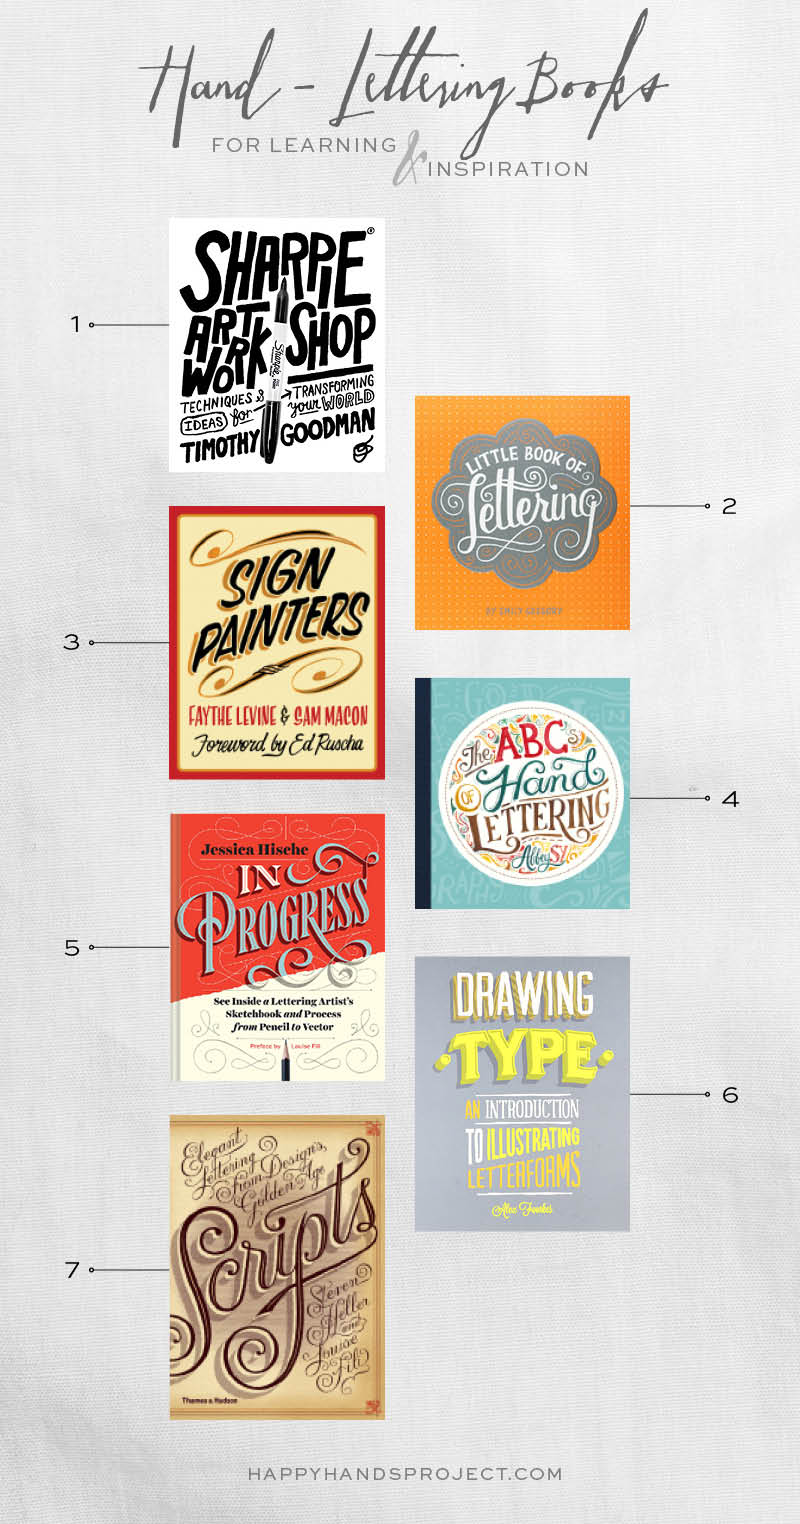 Hand Lettering 101: The Newbie's Guide | Dawn Nicole Designs®